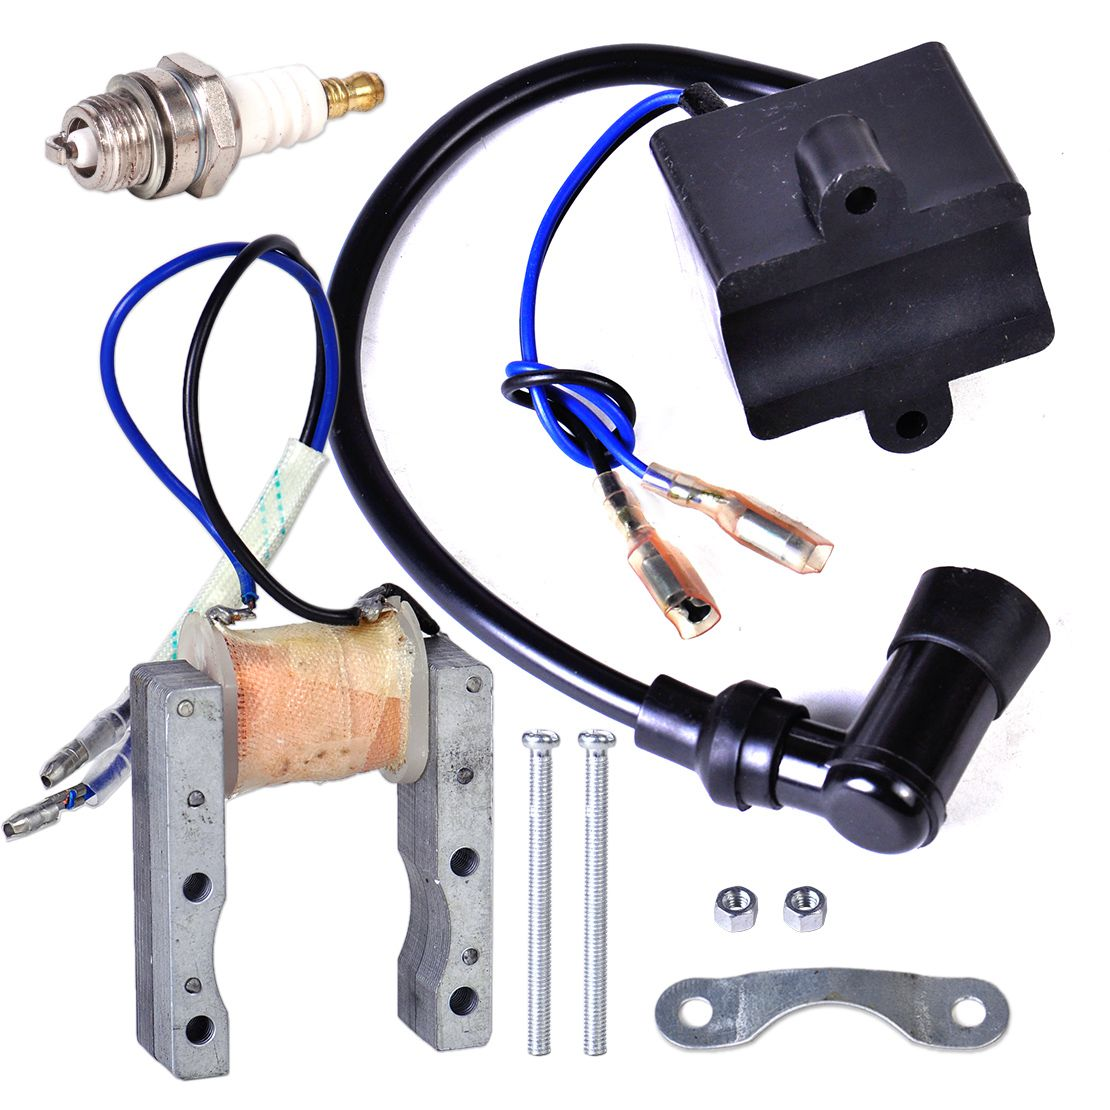 JRL Ignition Coil CDI And Magneto Stator Kit Fit For 49cc To 80cc Motorized Bicycle